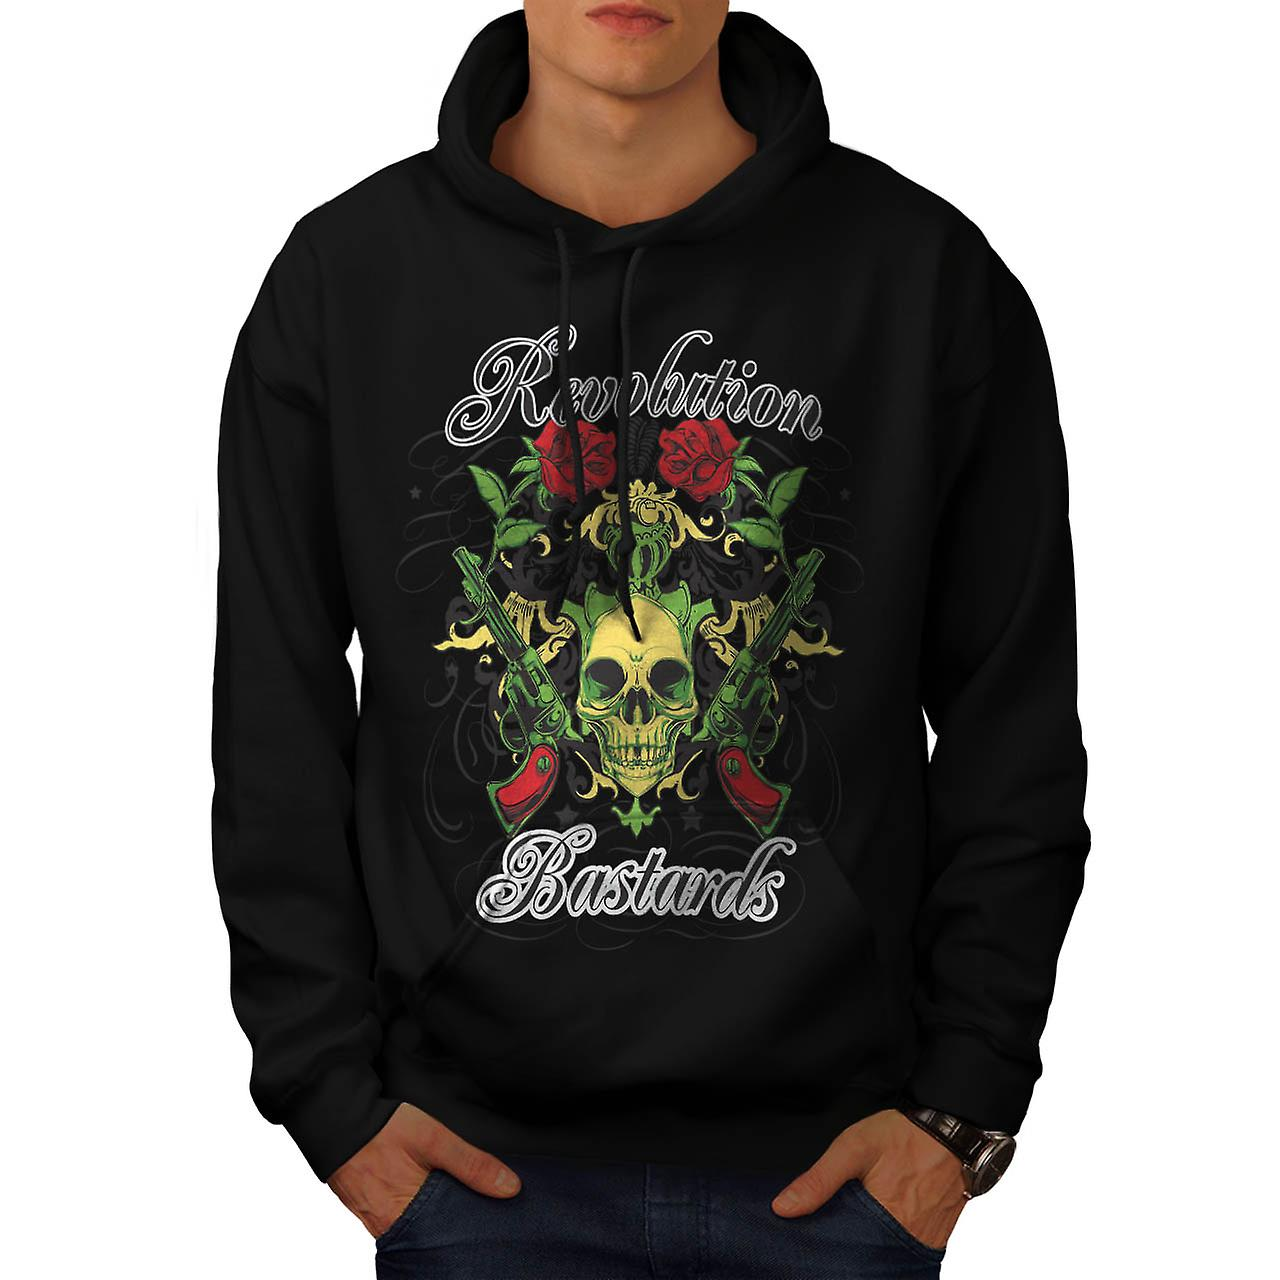 Revolution Bastards Roses Guns Men Black Hoodie | Wellcoda